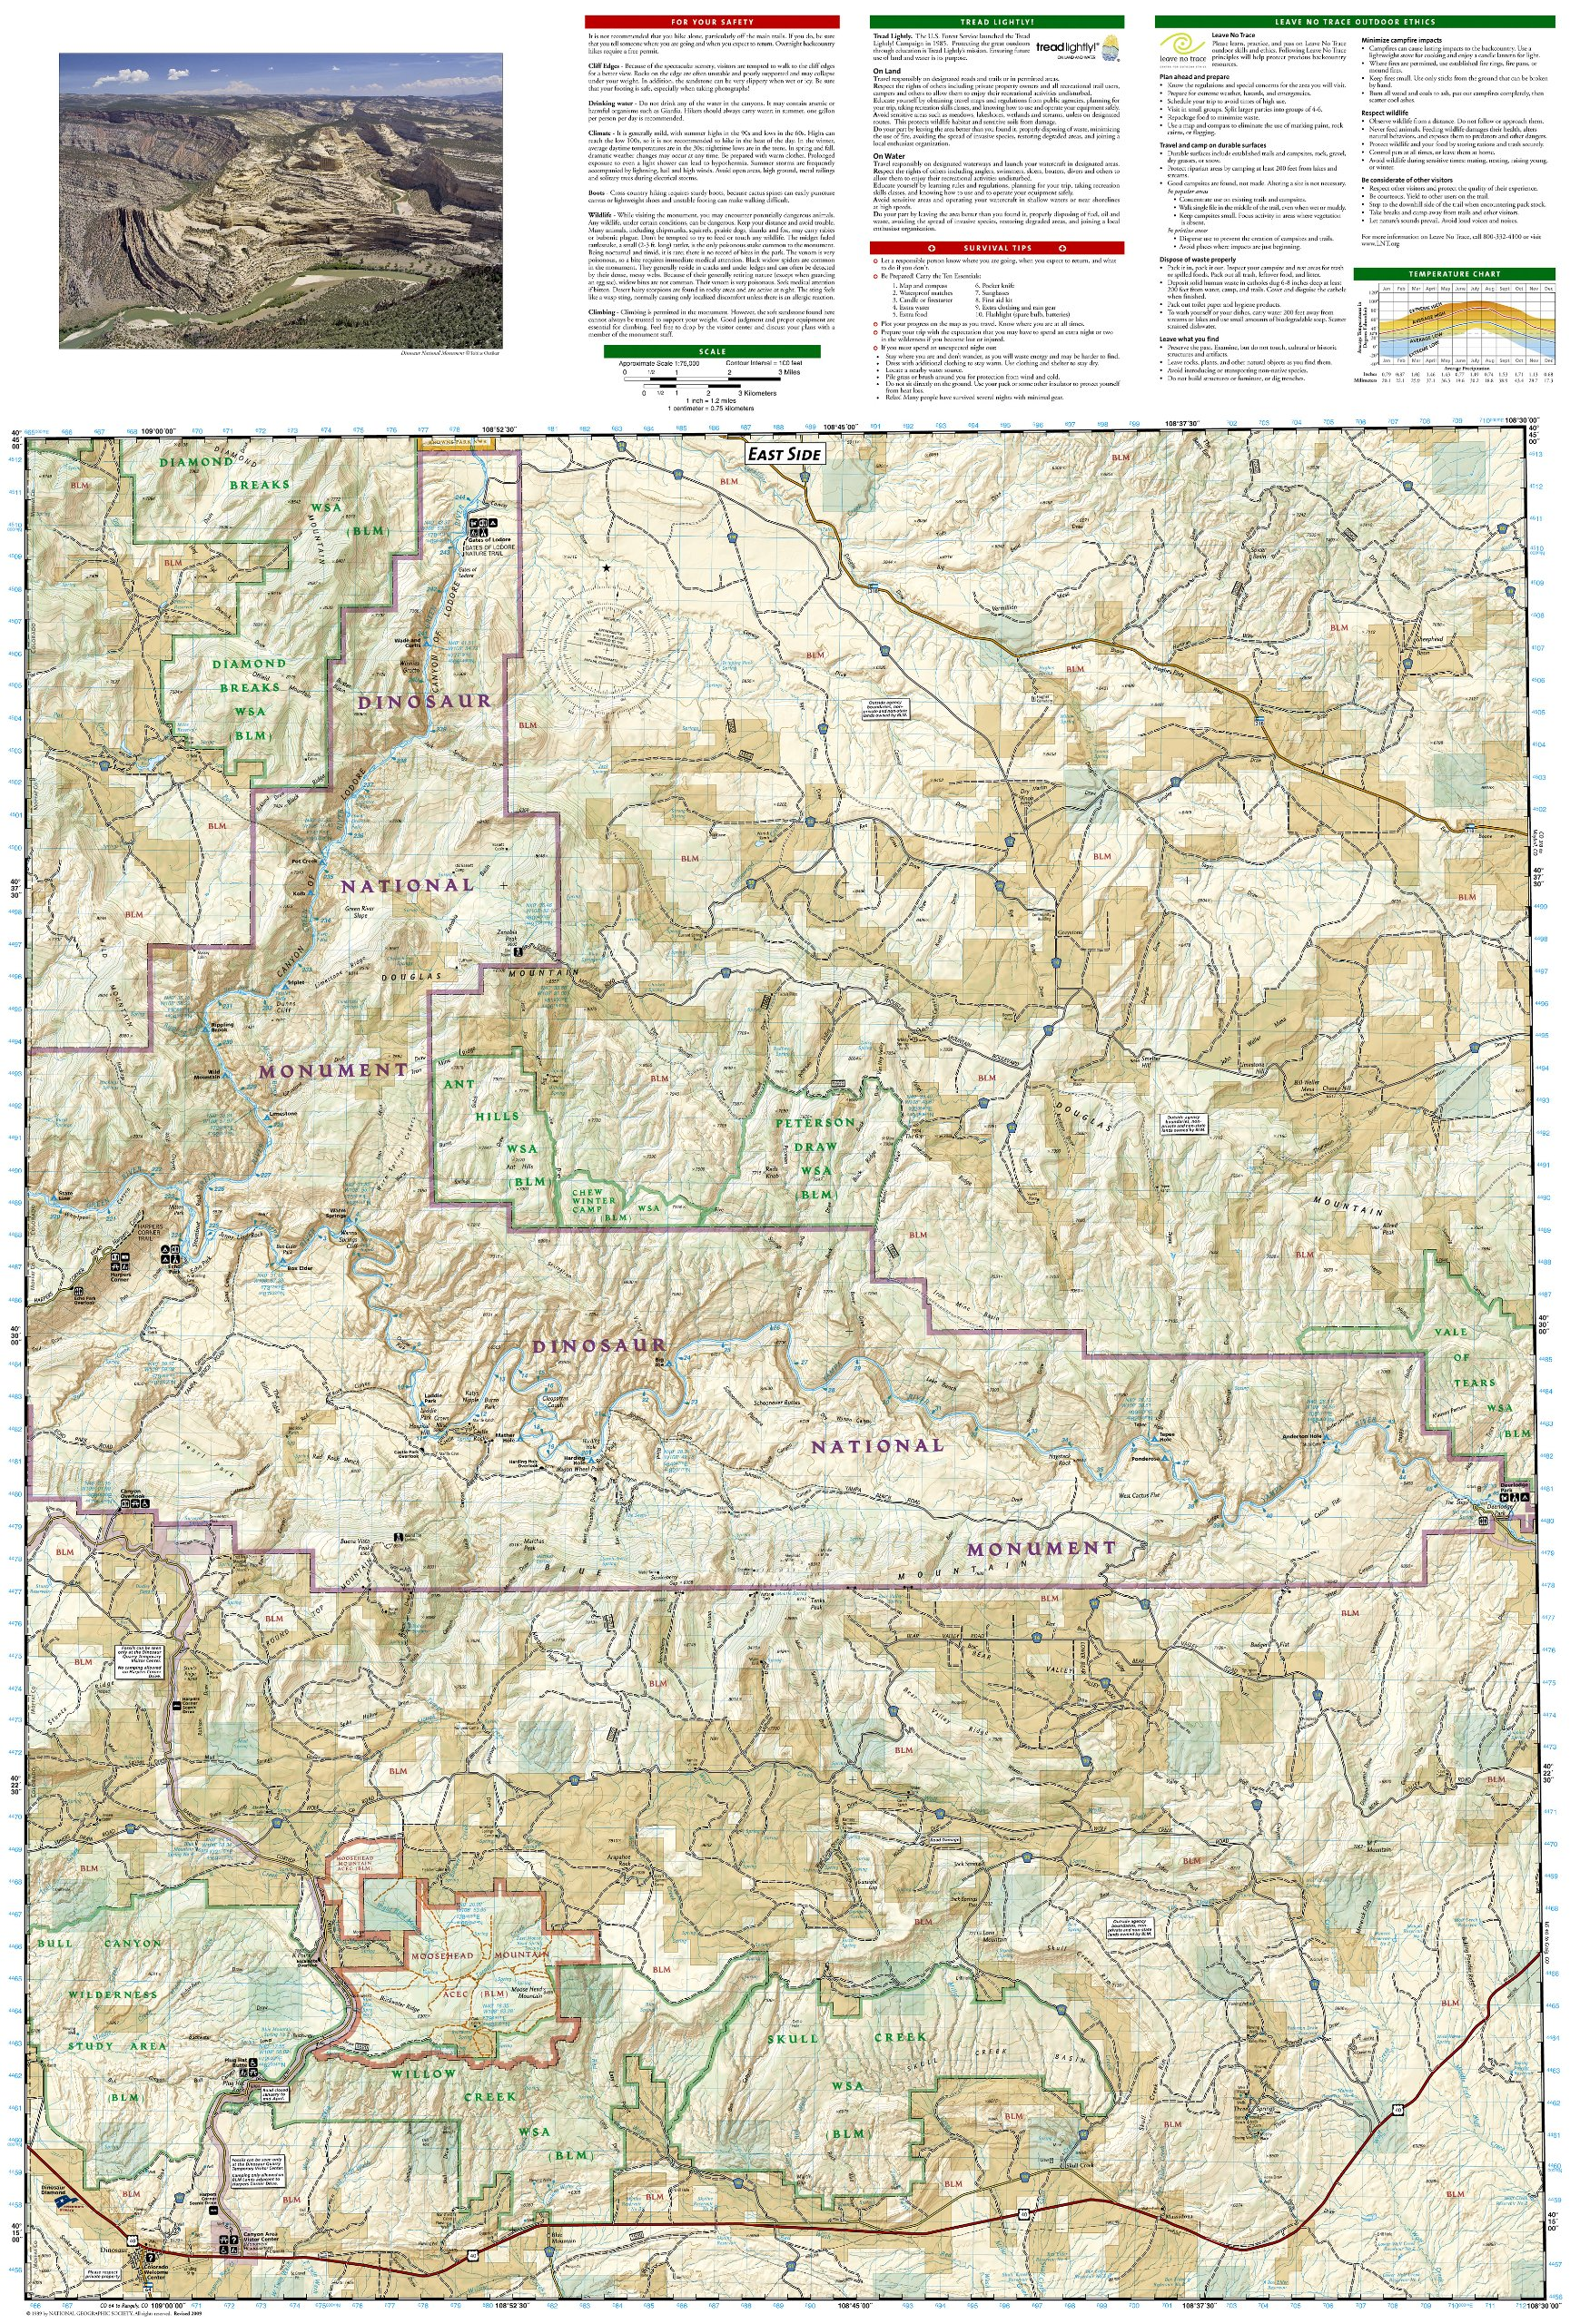 Dinosaur National Monument (National Geographic Trails Illustrated on